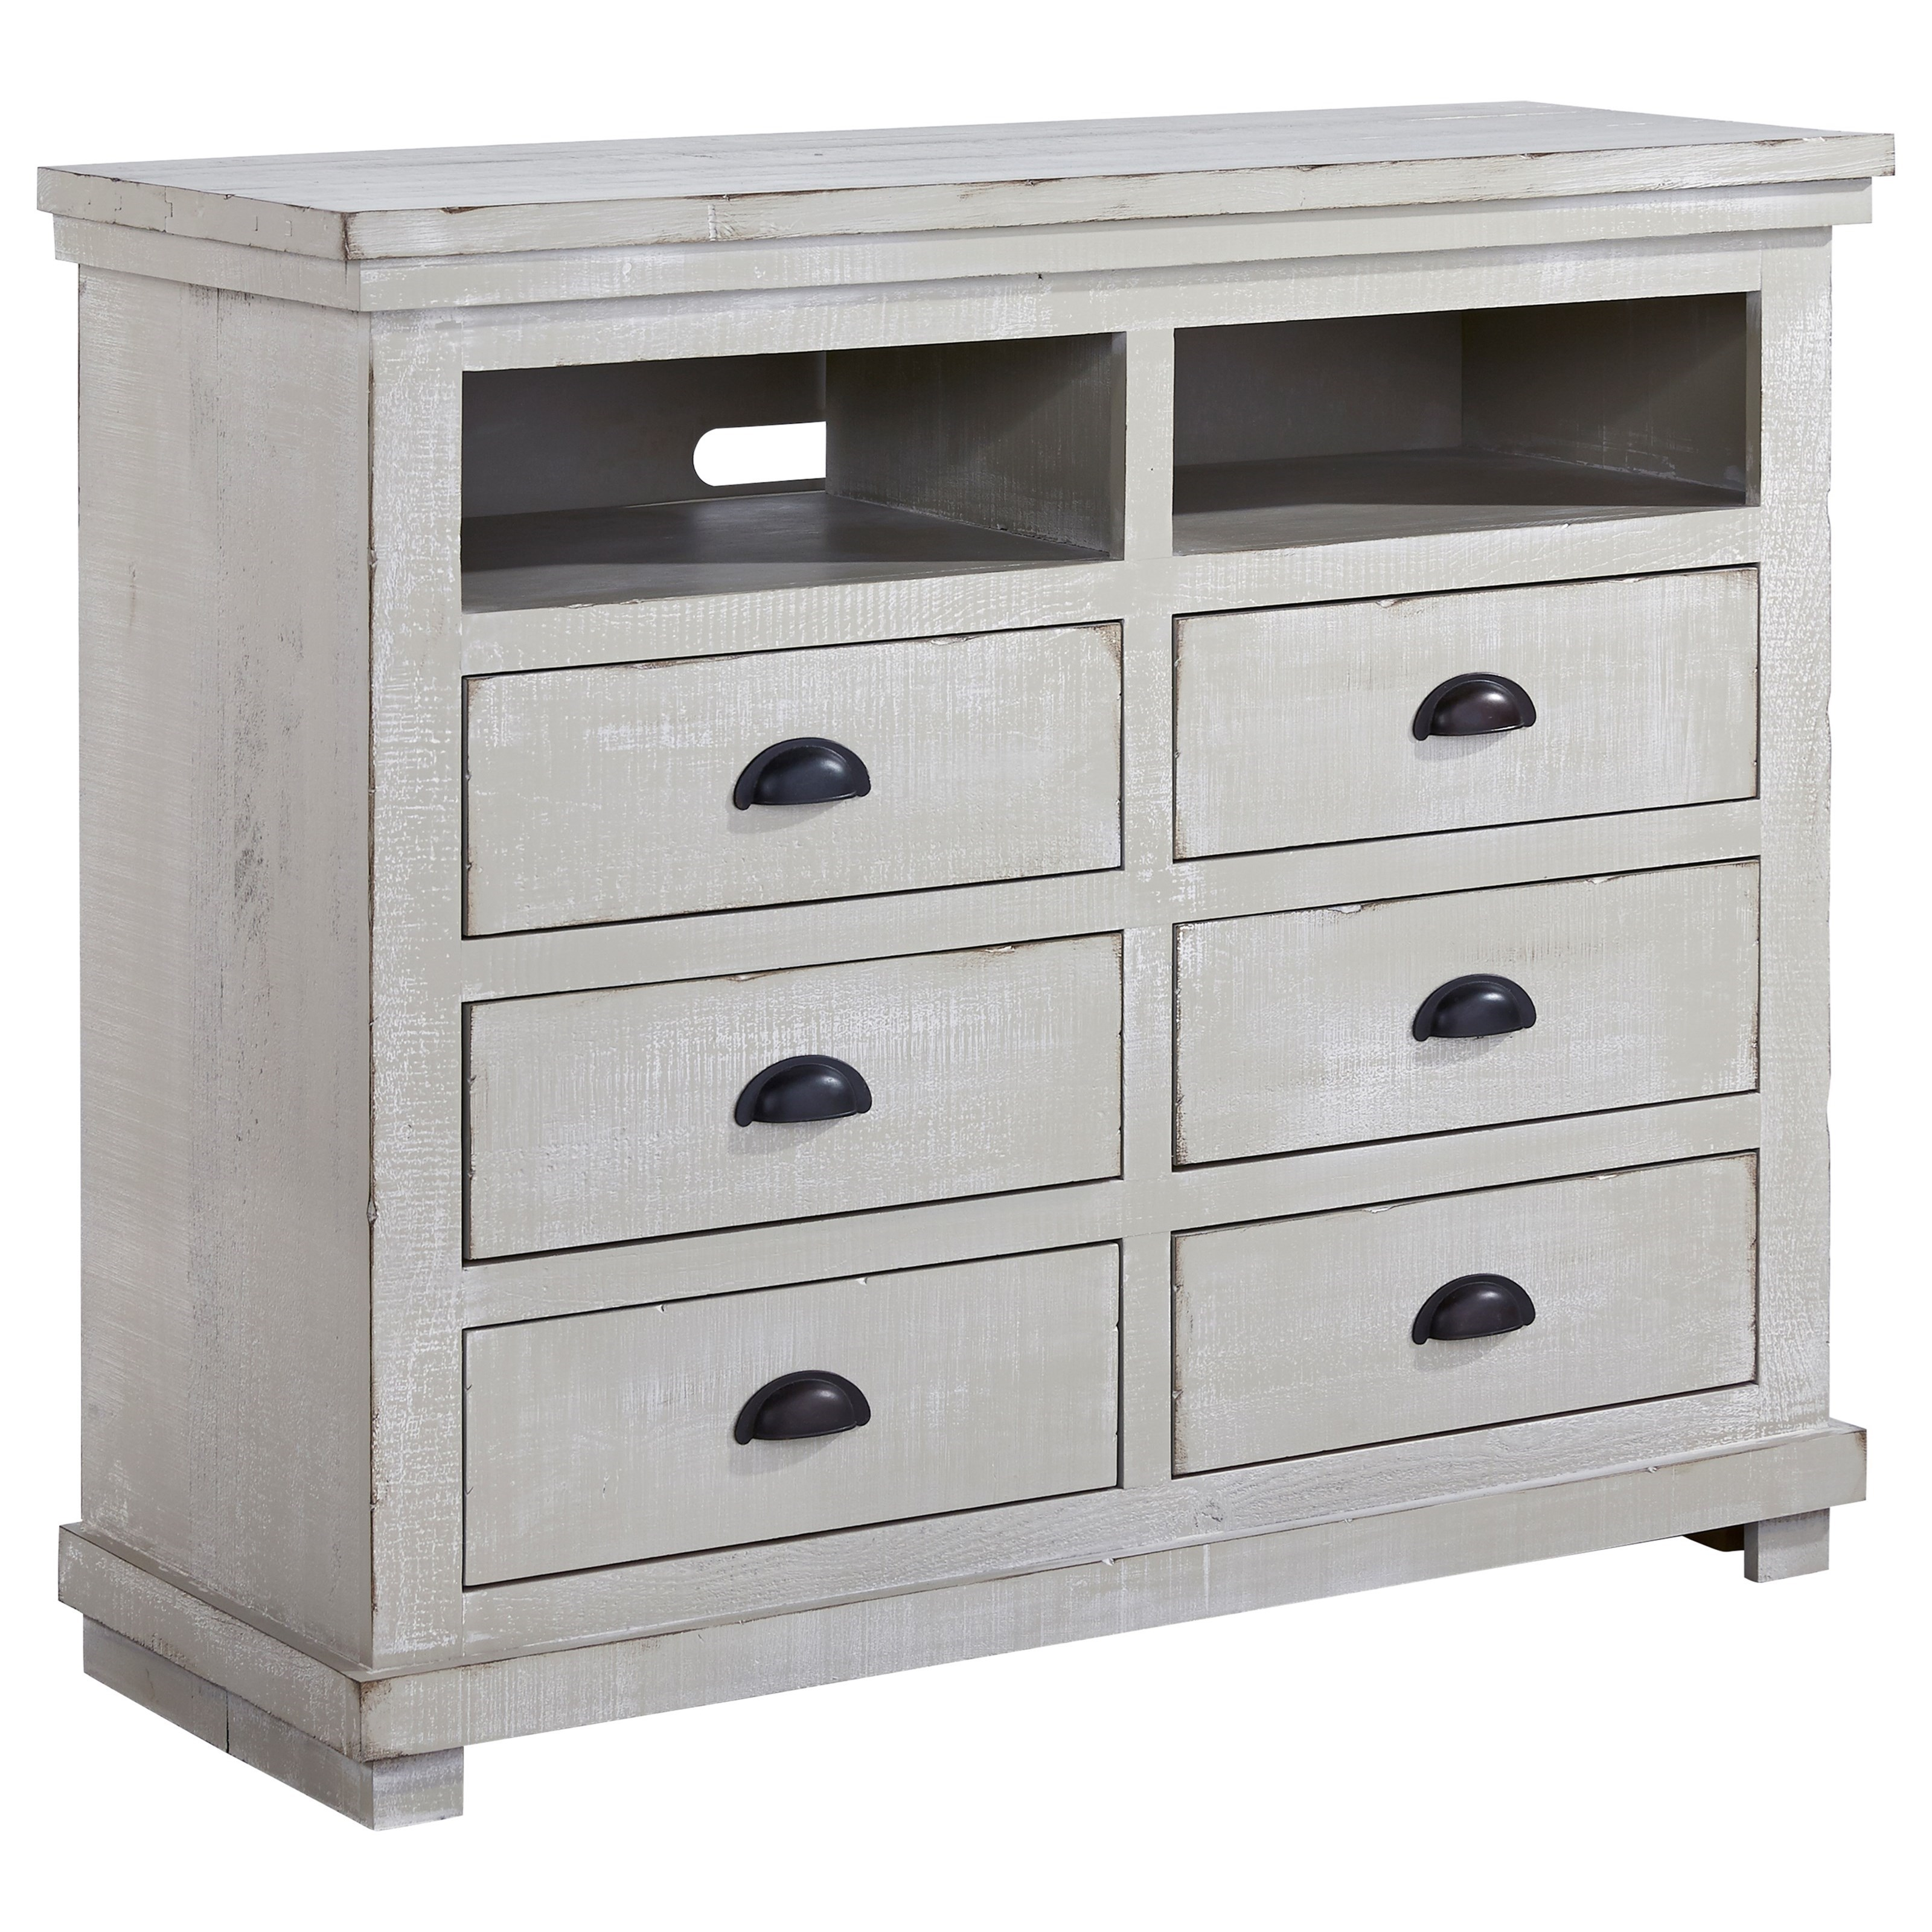 Willow Media Chest by Progressive Furniture at Value City Furniture